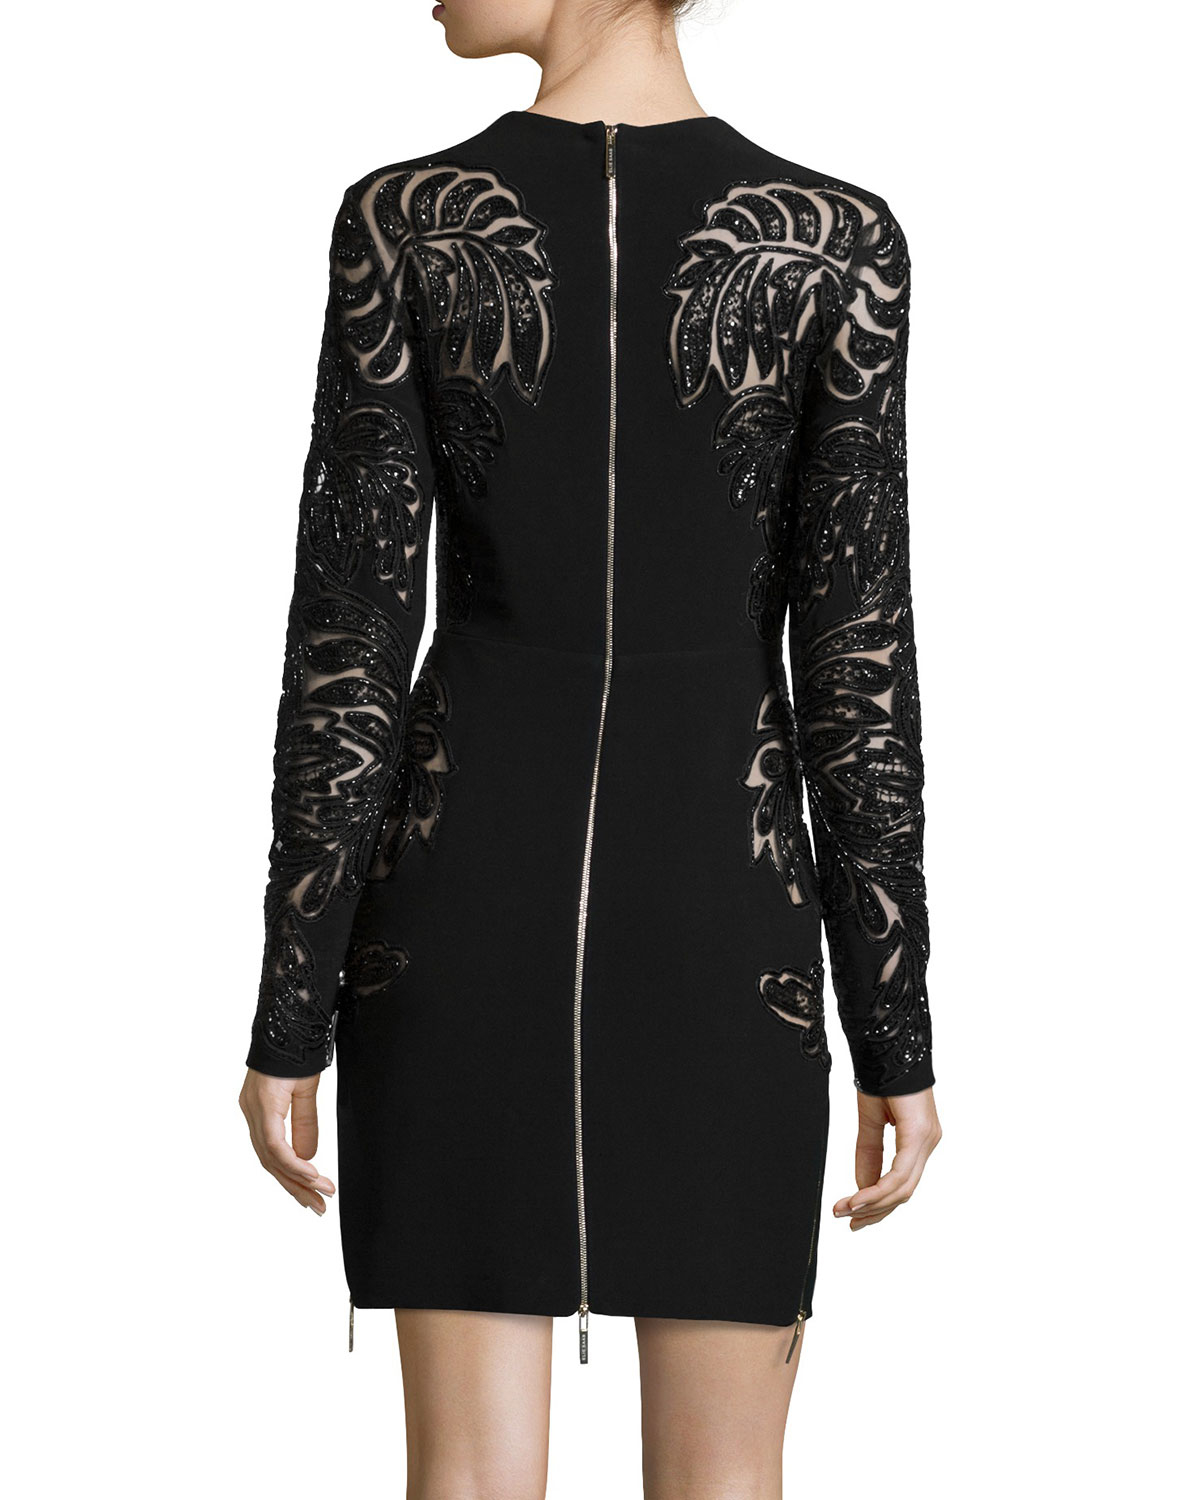 288e888b90 Elie Saab Long-sleeve Lace Cutout Cocktail Dress in Black - Lyst